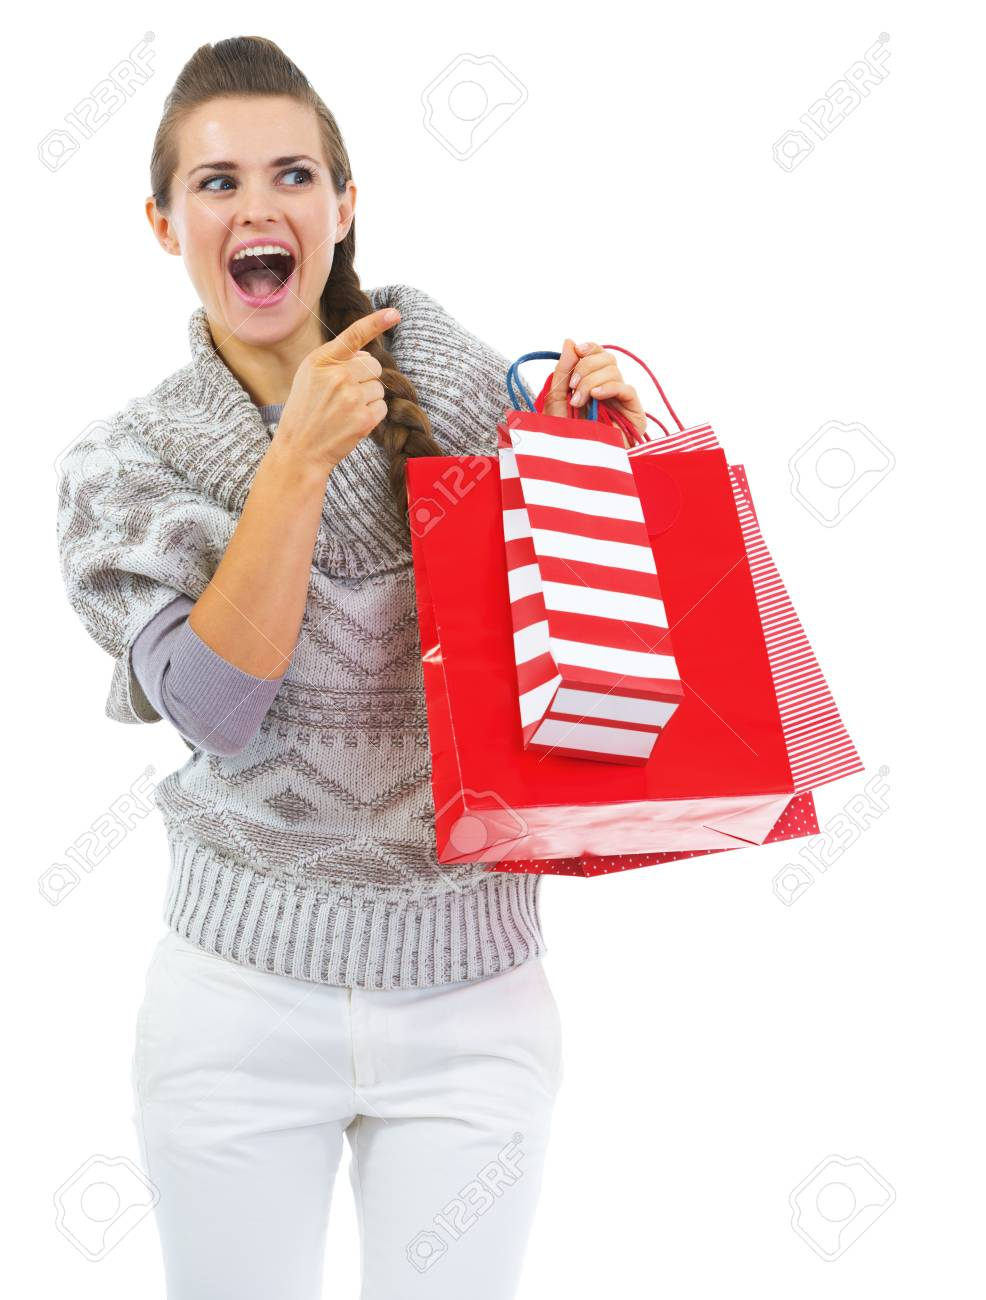 Surprised young woman in sweater with shopping bags pointing on copy space Stock Photo - 21792298